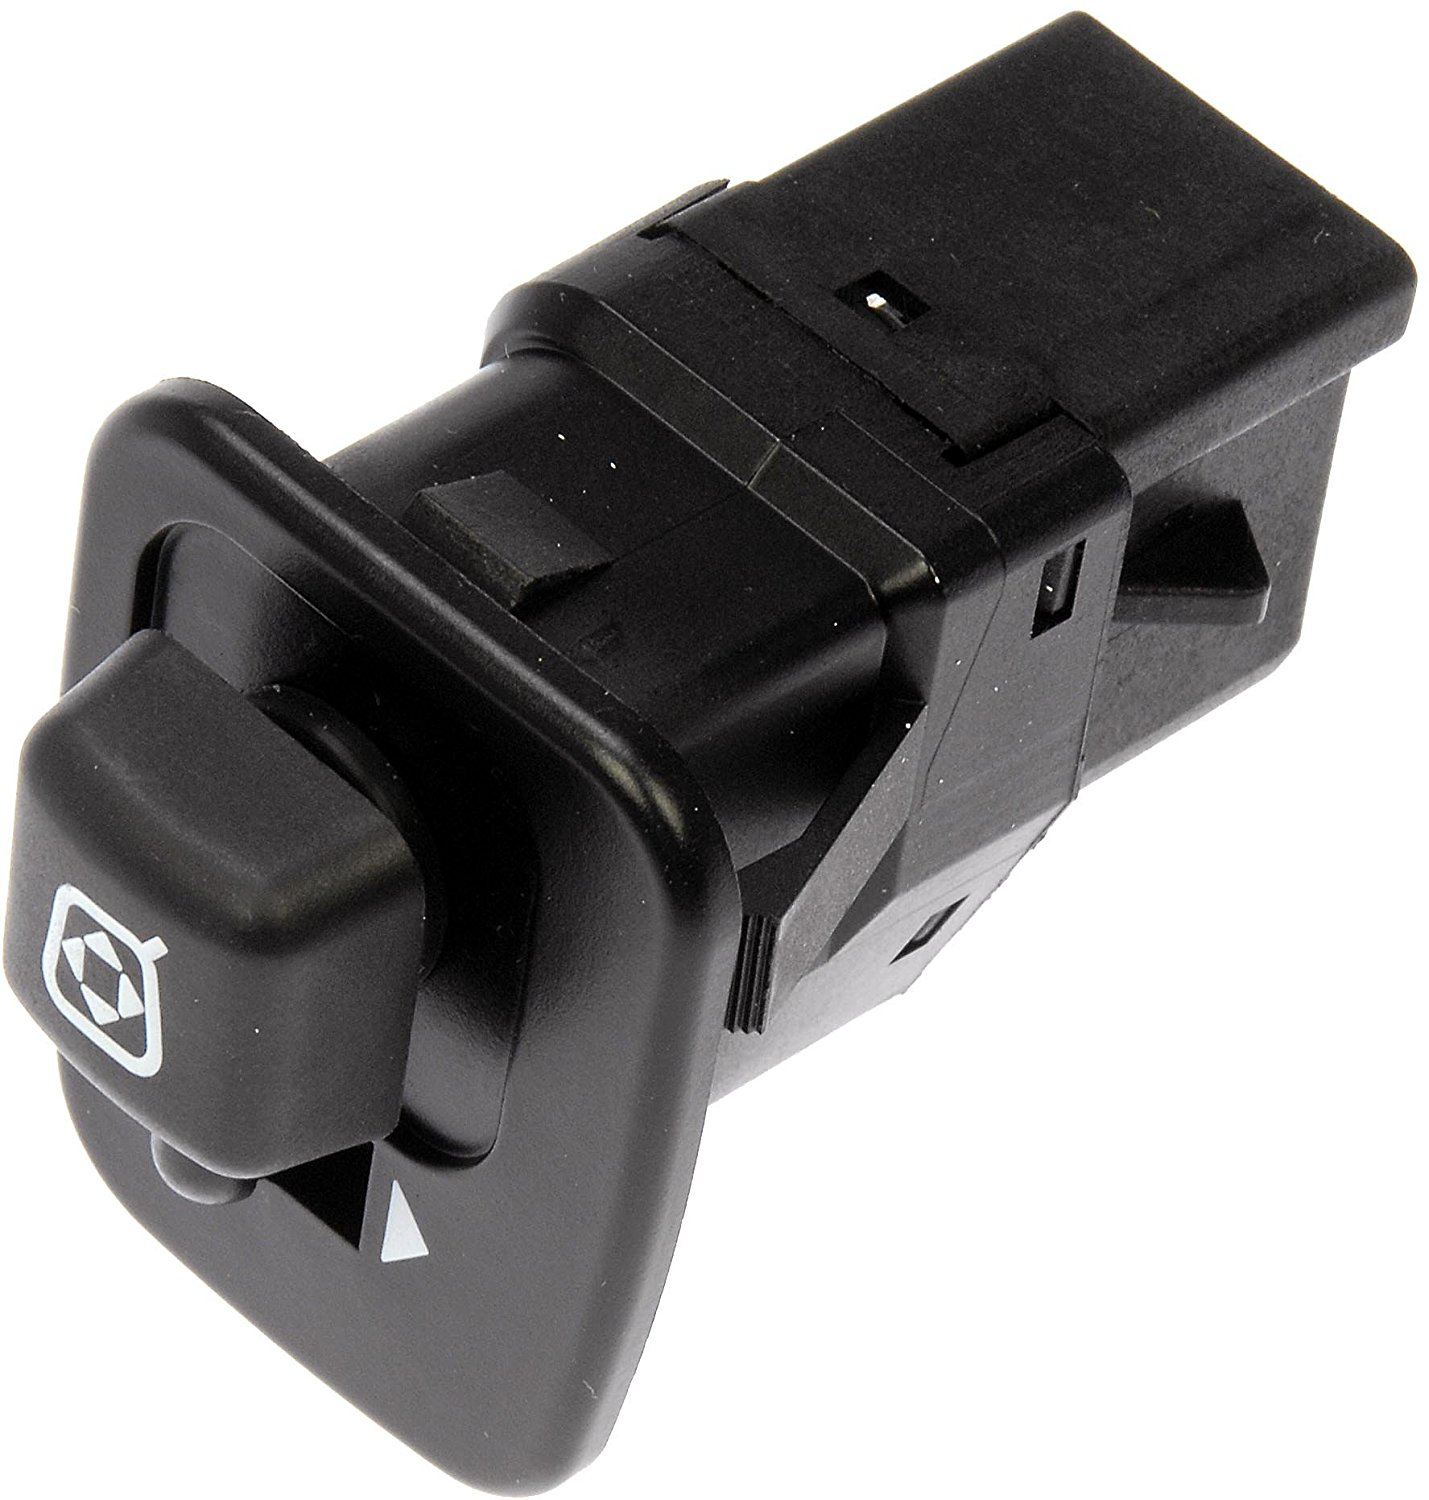 901-332 Power Mirror Switch, a 901124 901332 for 901000 proper Direct fit Switch Ford time Mirror replacement every Power 901319 By Dorman